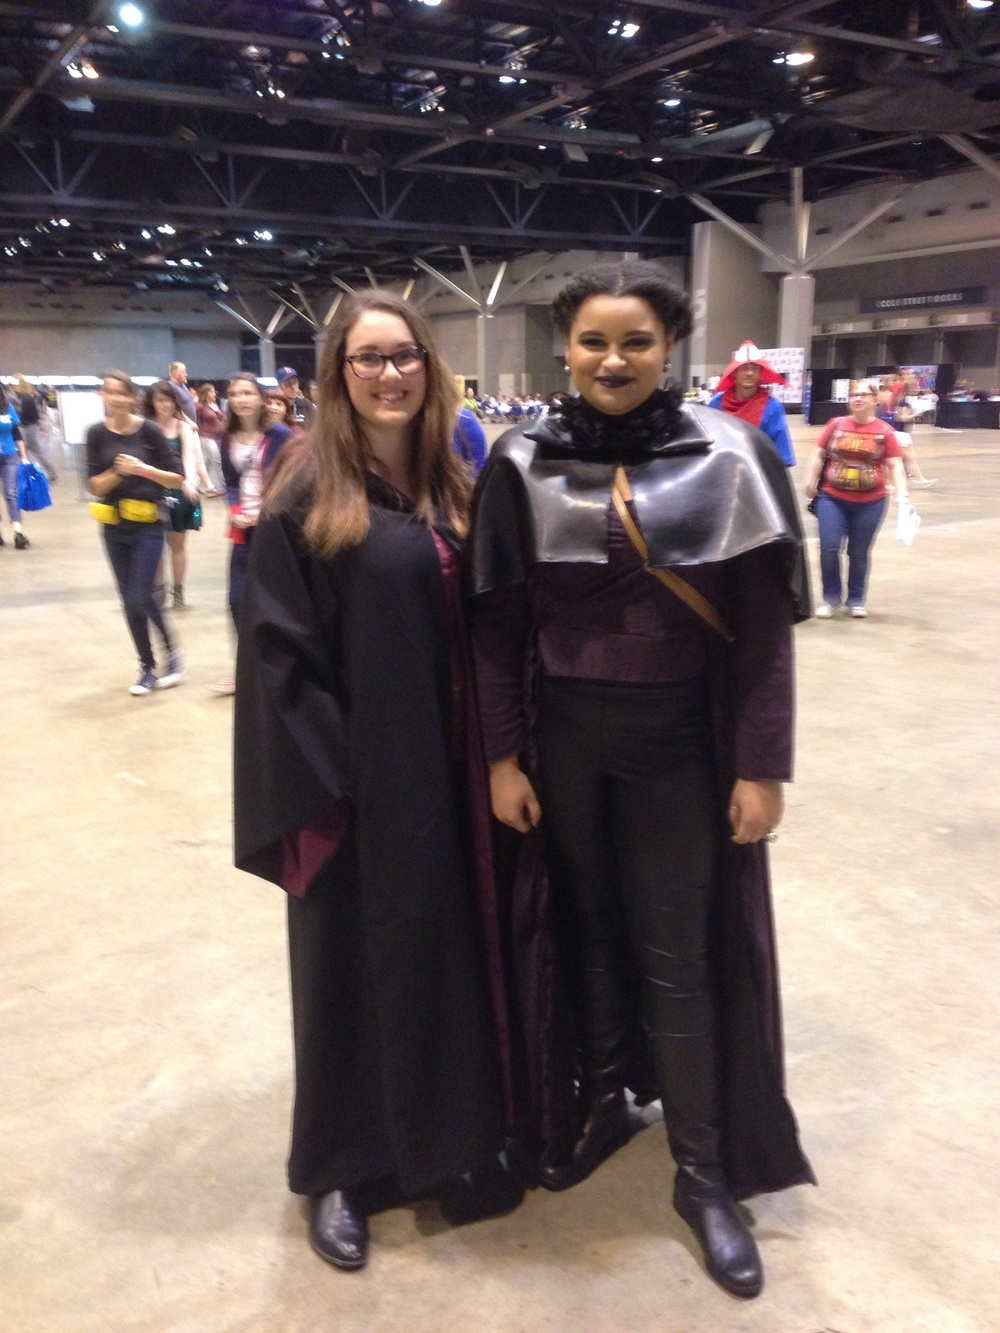 Some HP and ? Not sure, but the attire was quite good!